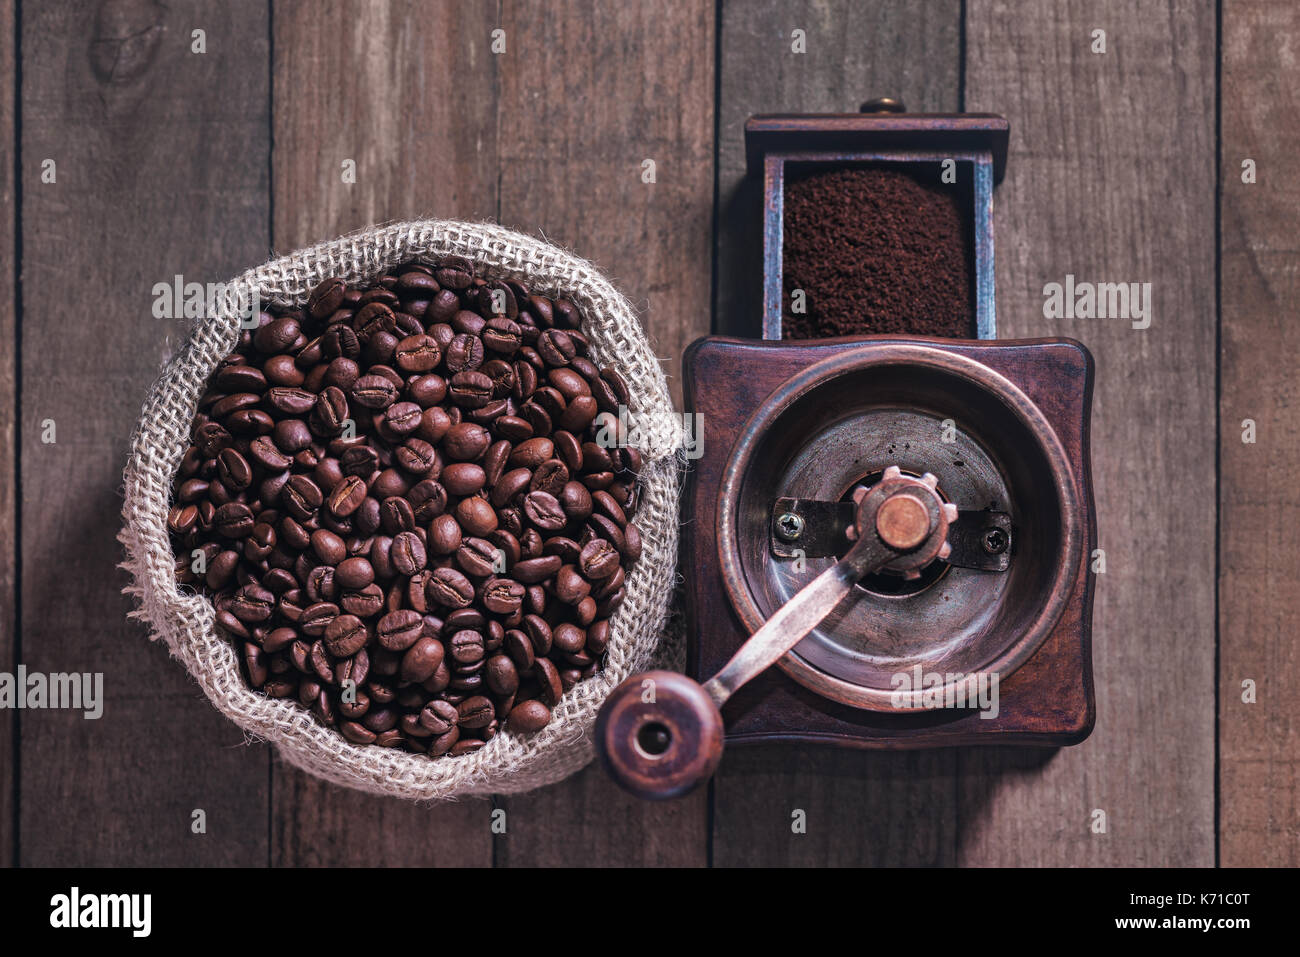 Grinding coffee from roasted beans into a rustic bag. - Stock Image